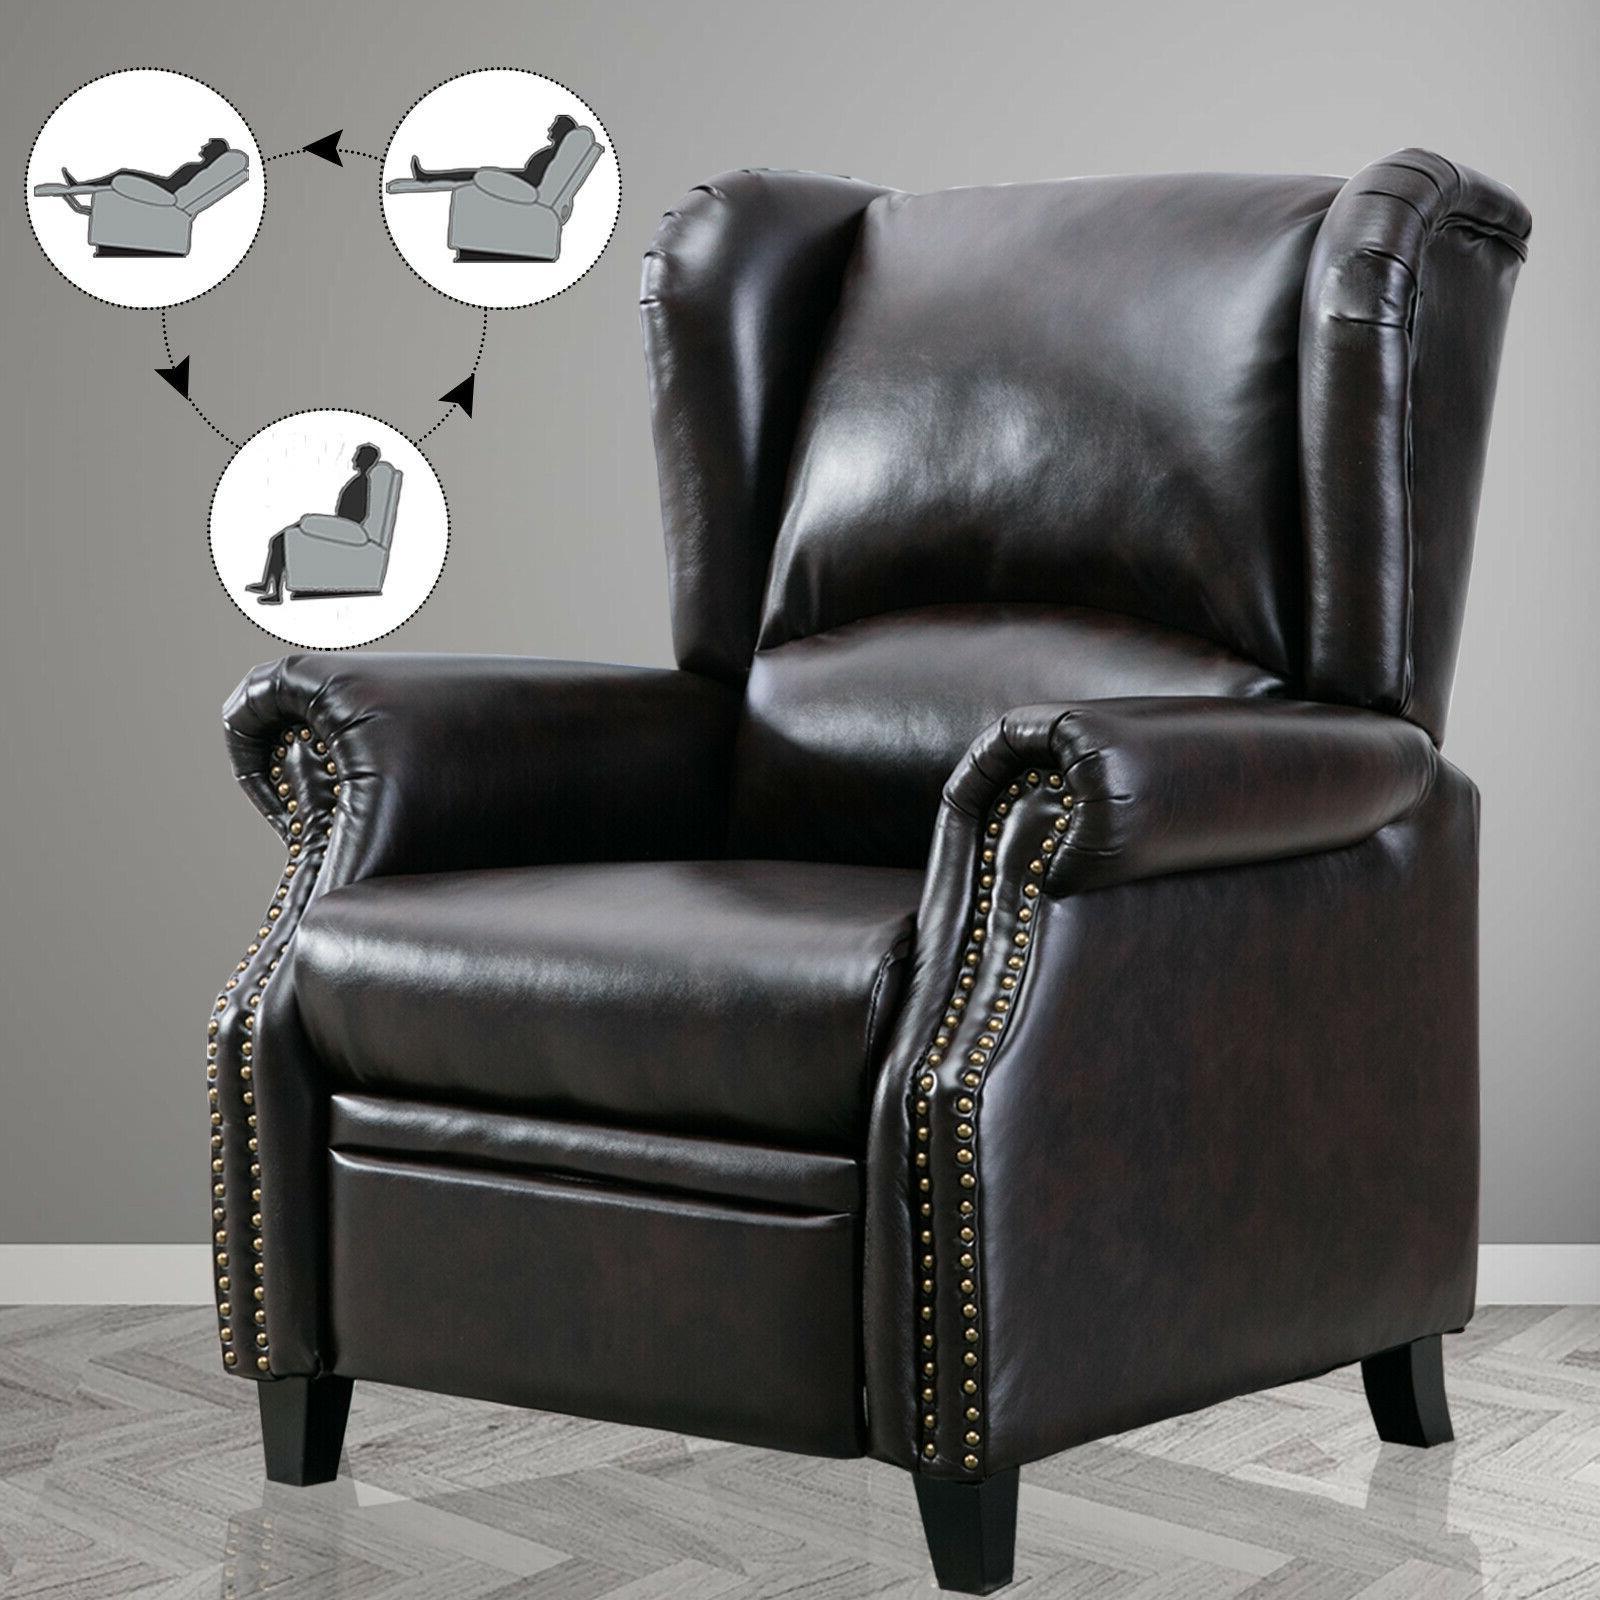 Faux Leather Reclining Chair Accent Push Back Arm Couch Sofa